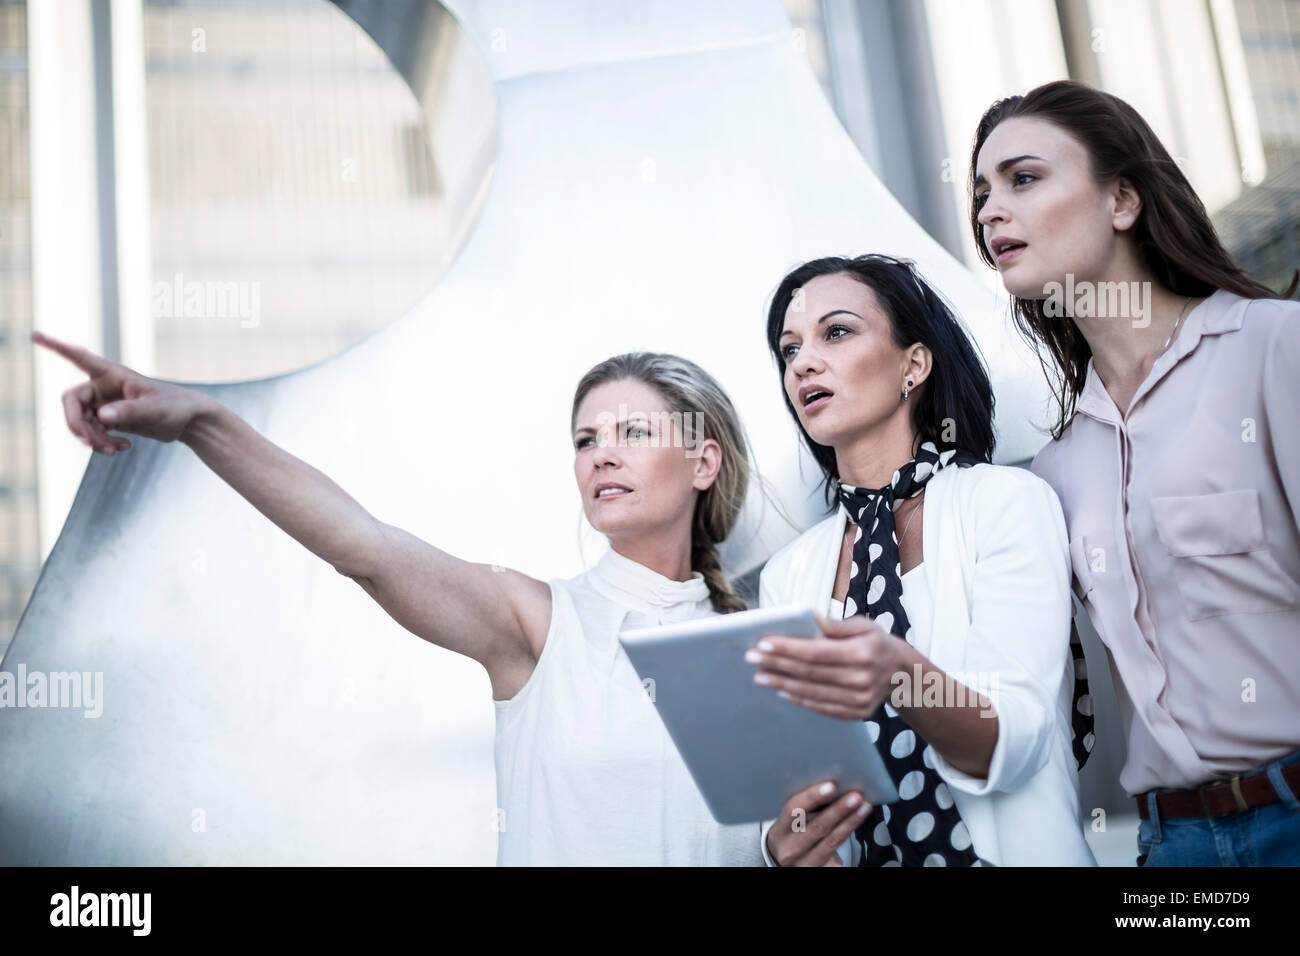 Three women with digital tablet in the city - Stock Image